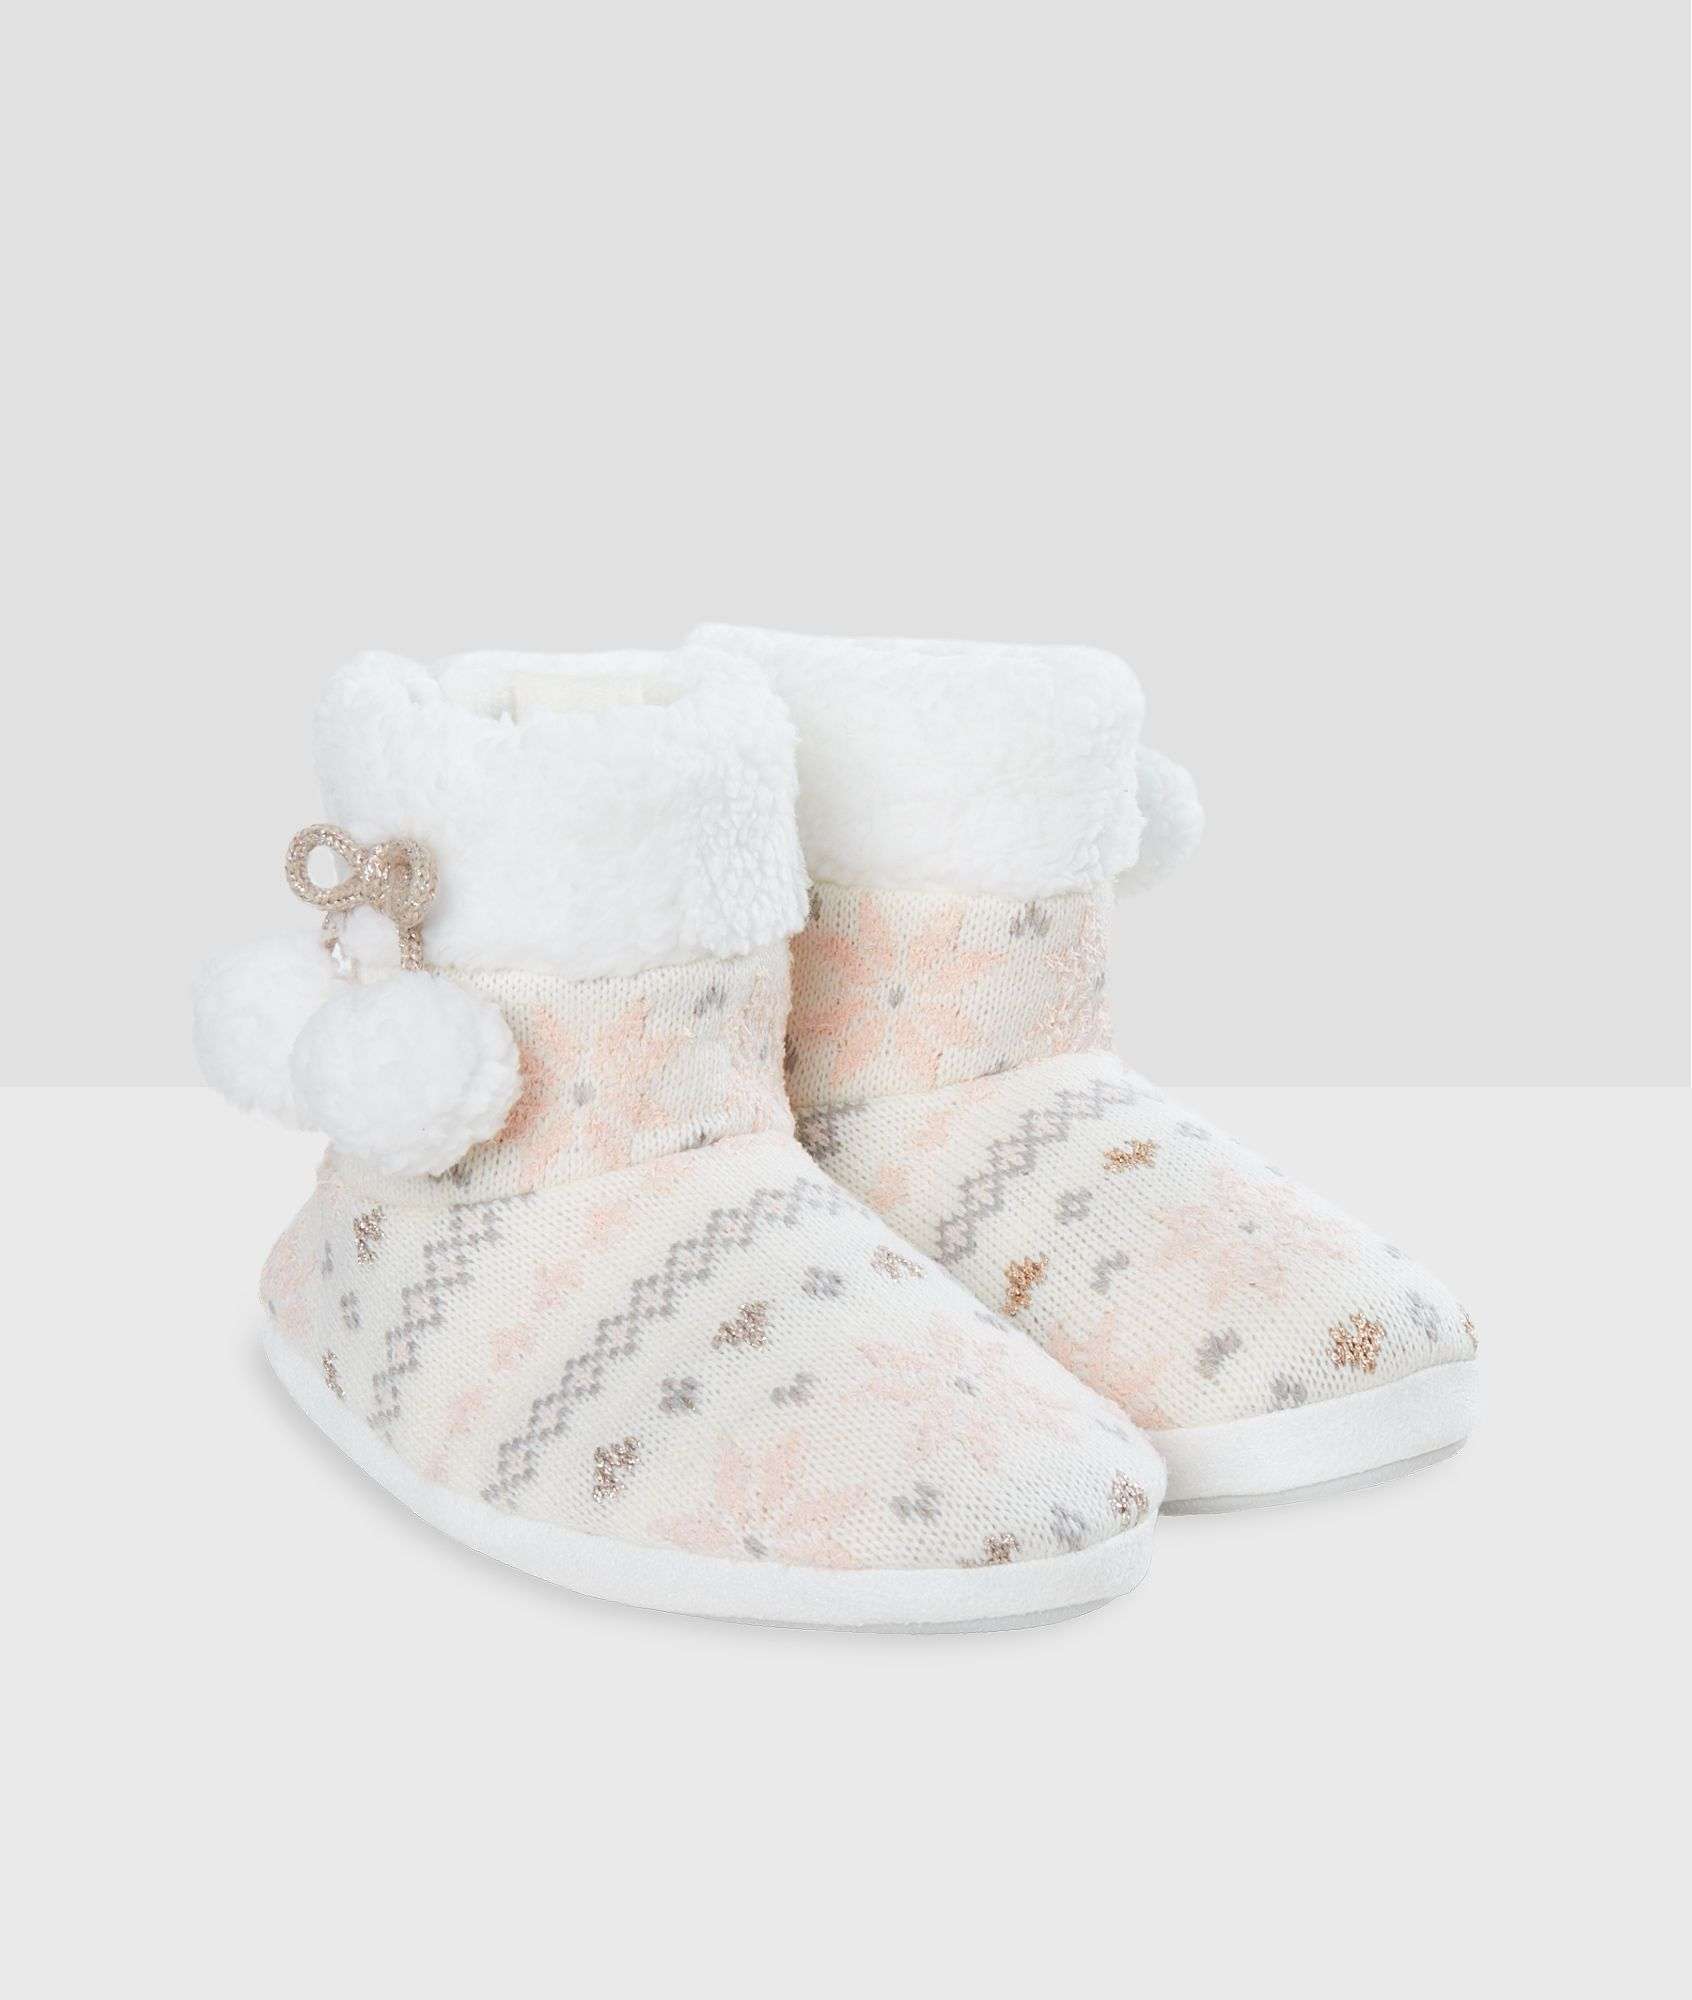 en ELSA ETAM bottines Chaussons 2019Bottines fourrés FKcJuT15l3